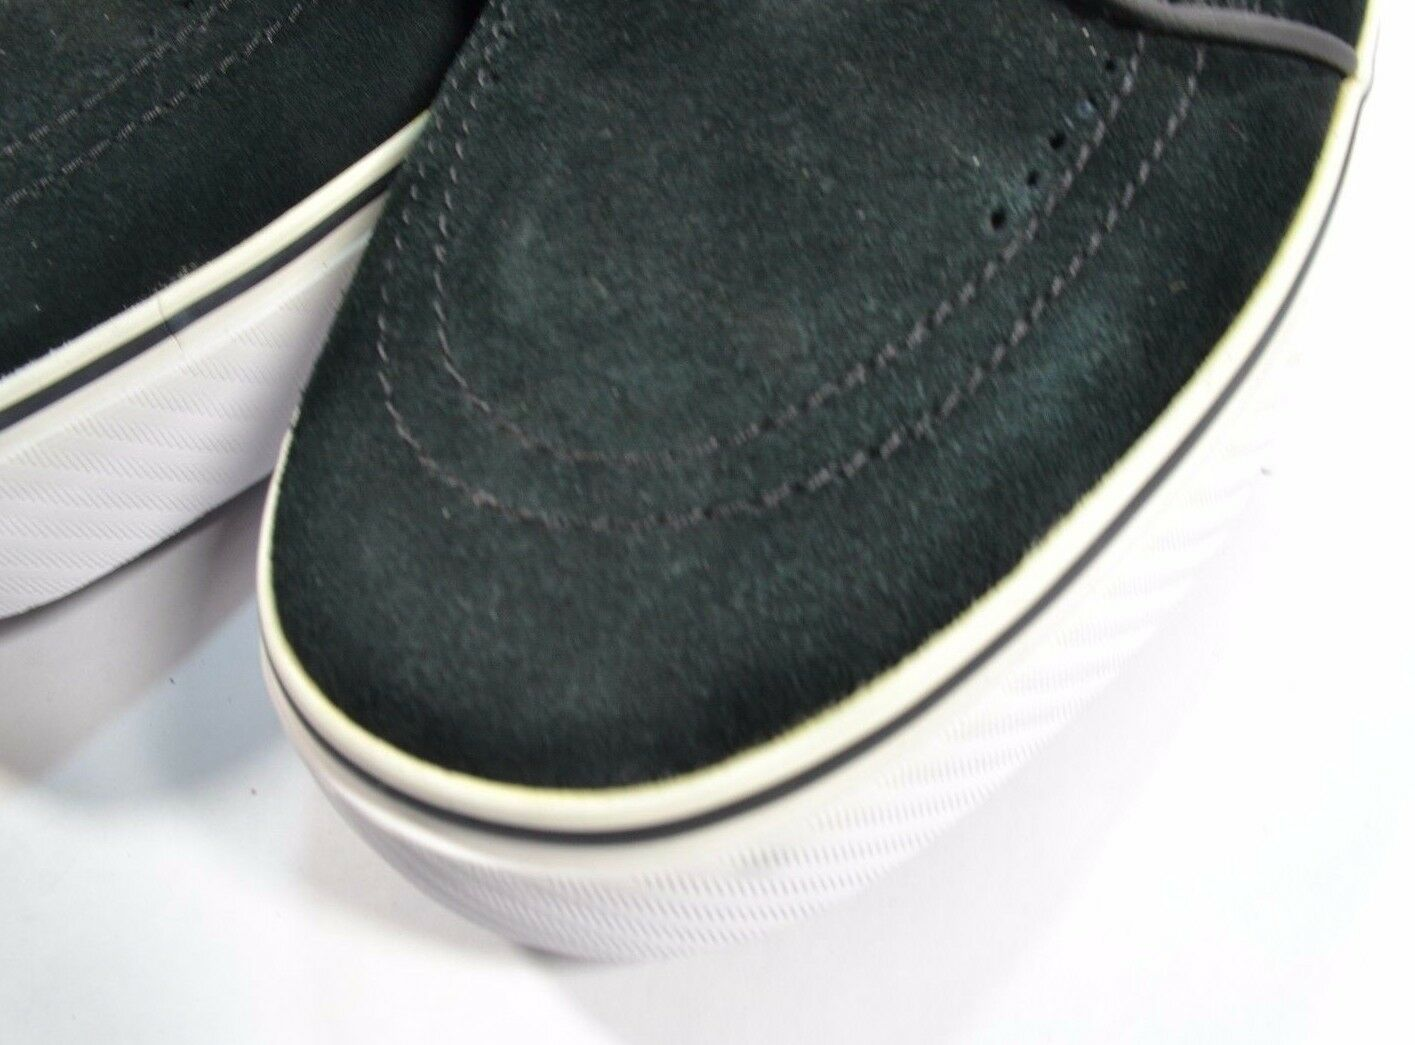 Nike NK ZM ZOOM STEFAN JANOSKI MD Black White White White Suede Discounted (104) Mens Shoes f1a2c0